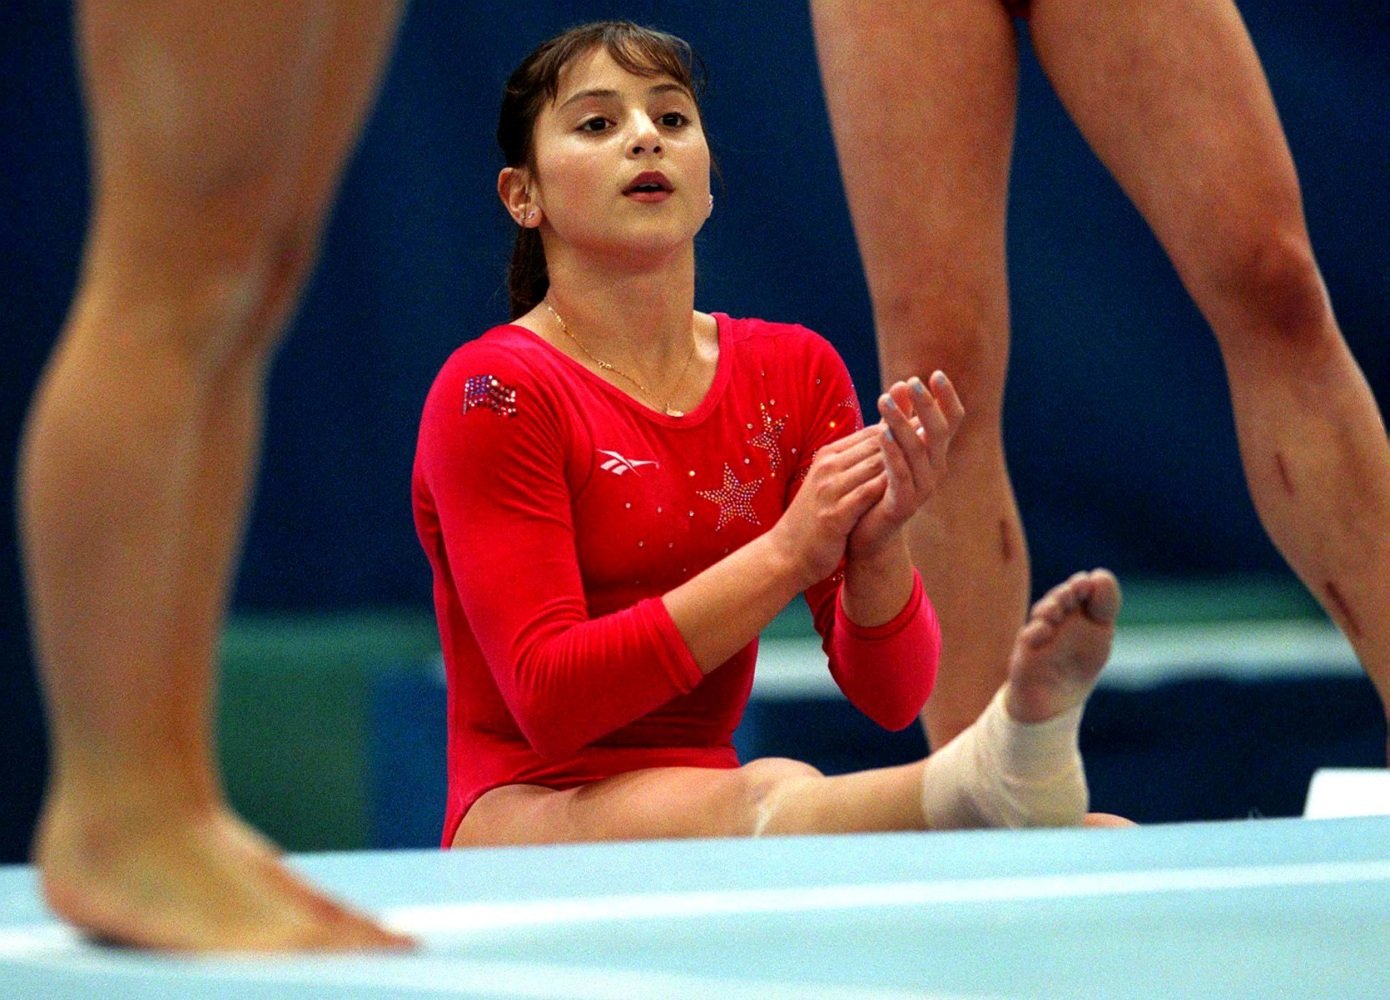 High-profile gymnasts claim abuse by doctor